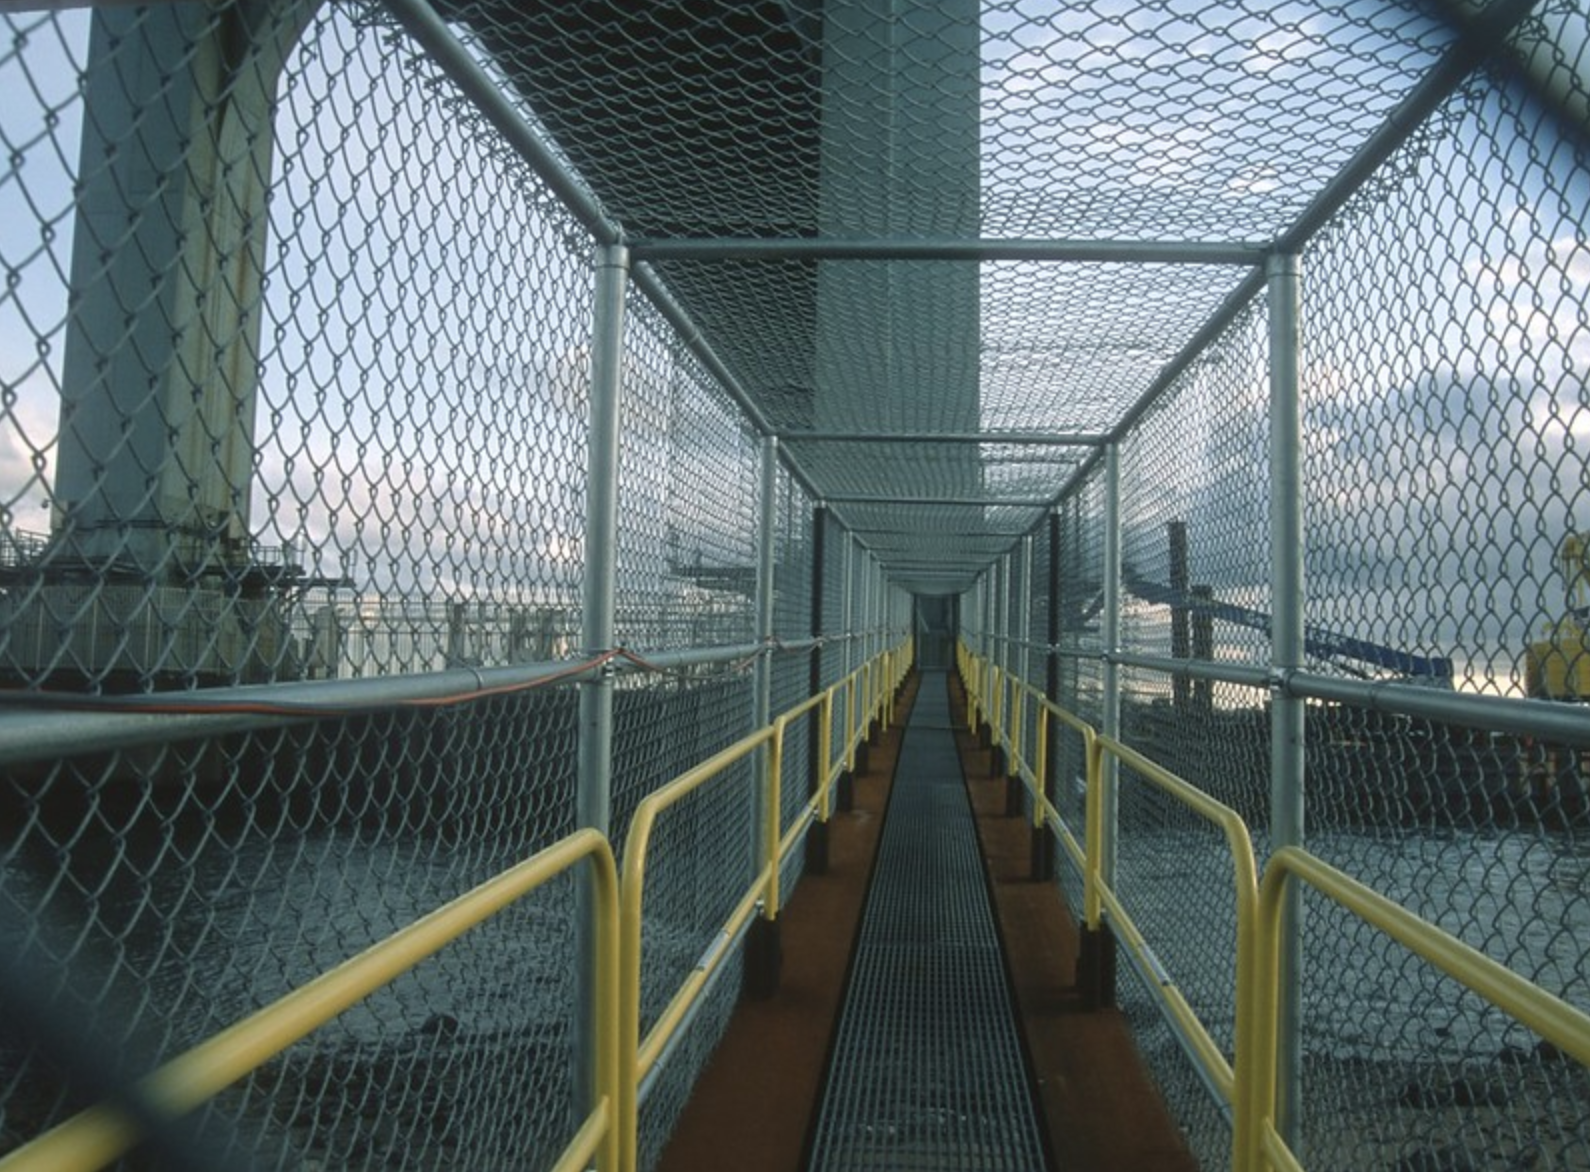 A walkway covered in chain link fencing at the Bronx-Whitestone bridge.